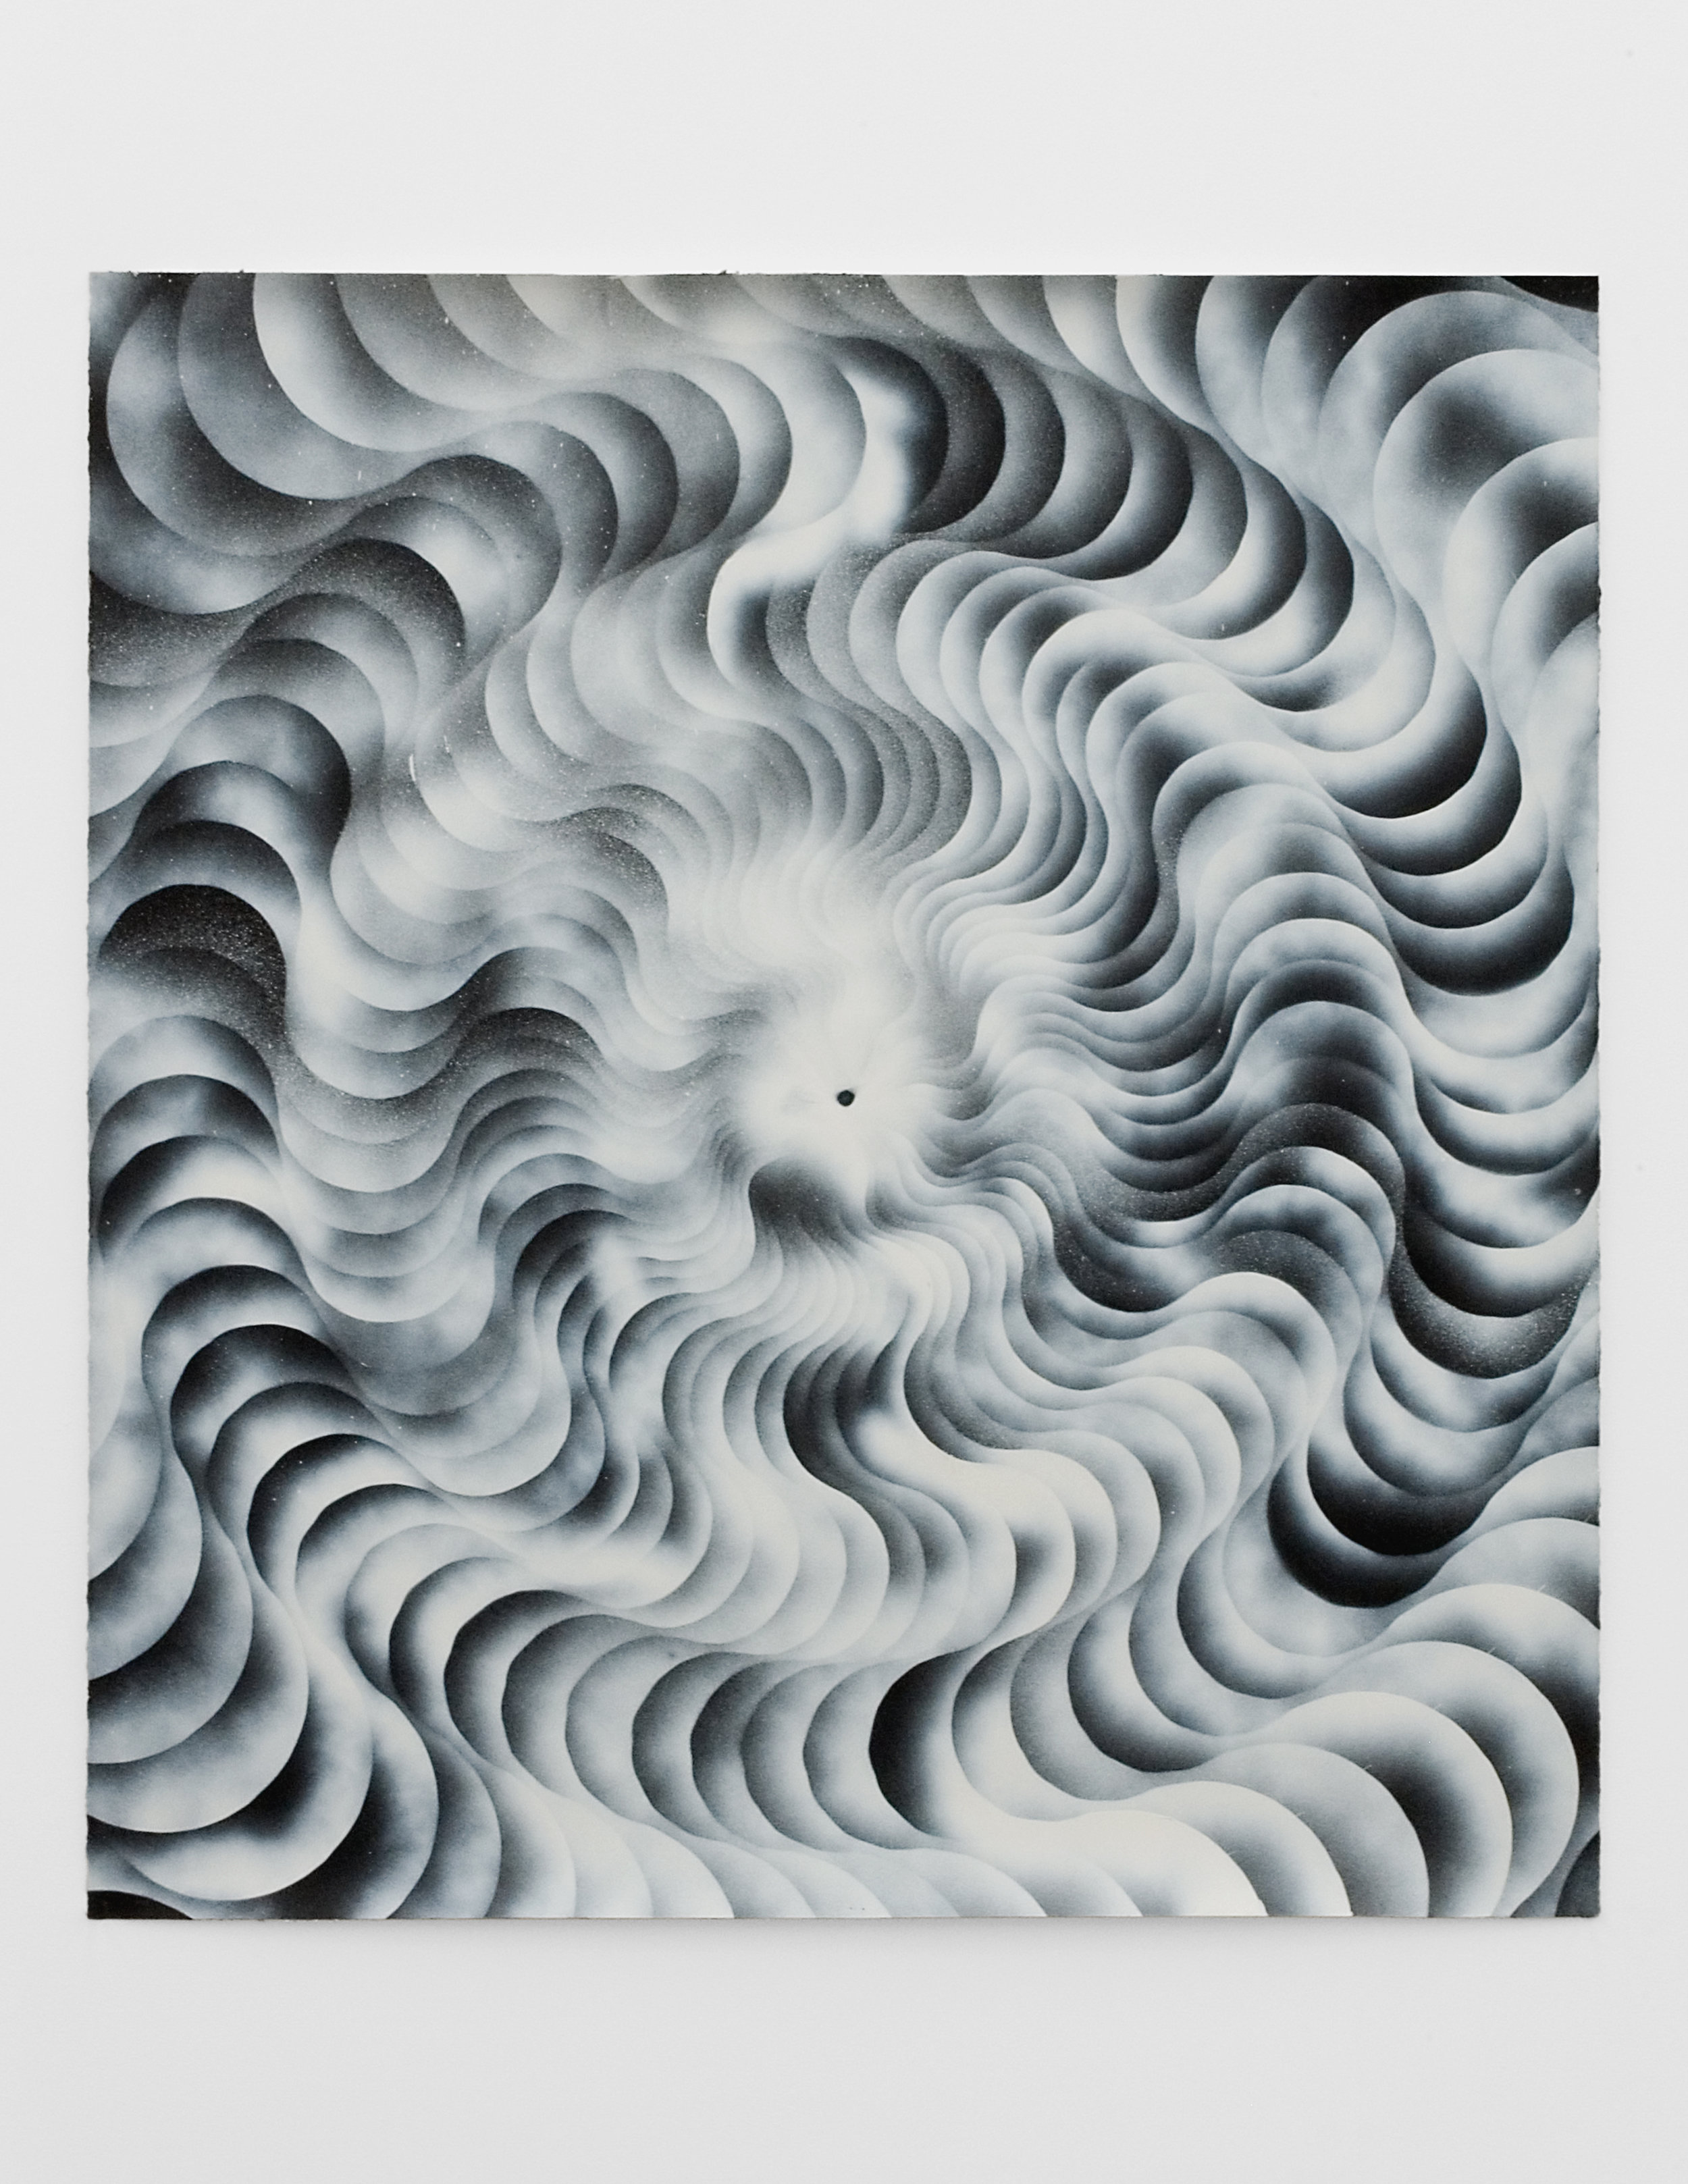 Vortex #1, 2008 sumi ink, acrylic varnish, colored pencil and spray paint on paper 133 x 123 cm - 52 3/8 x 48 3/8 inches